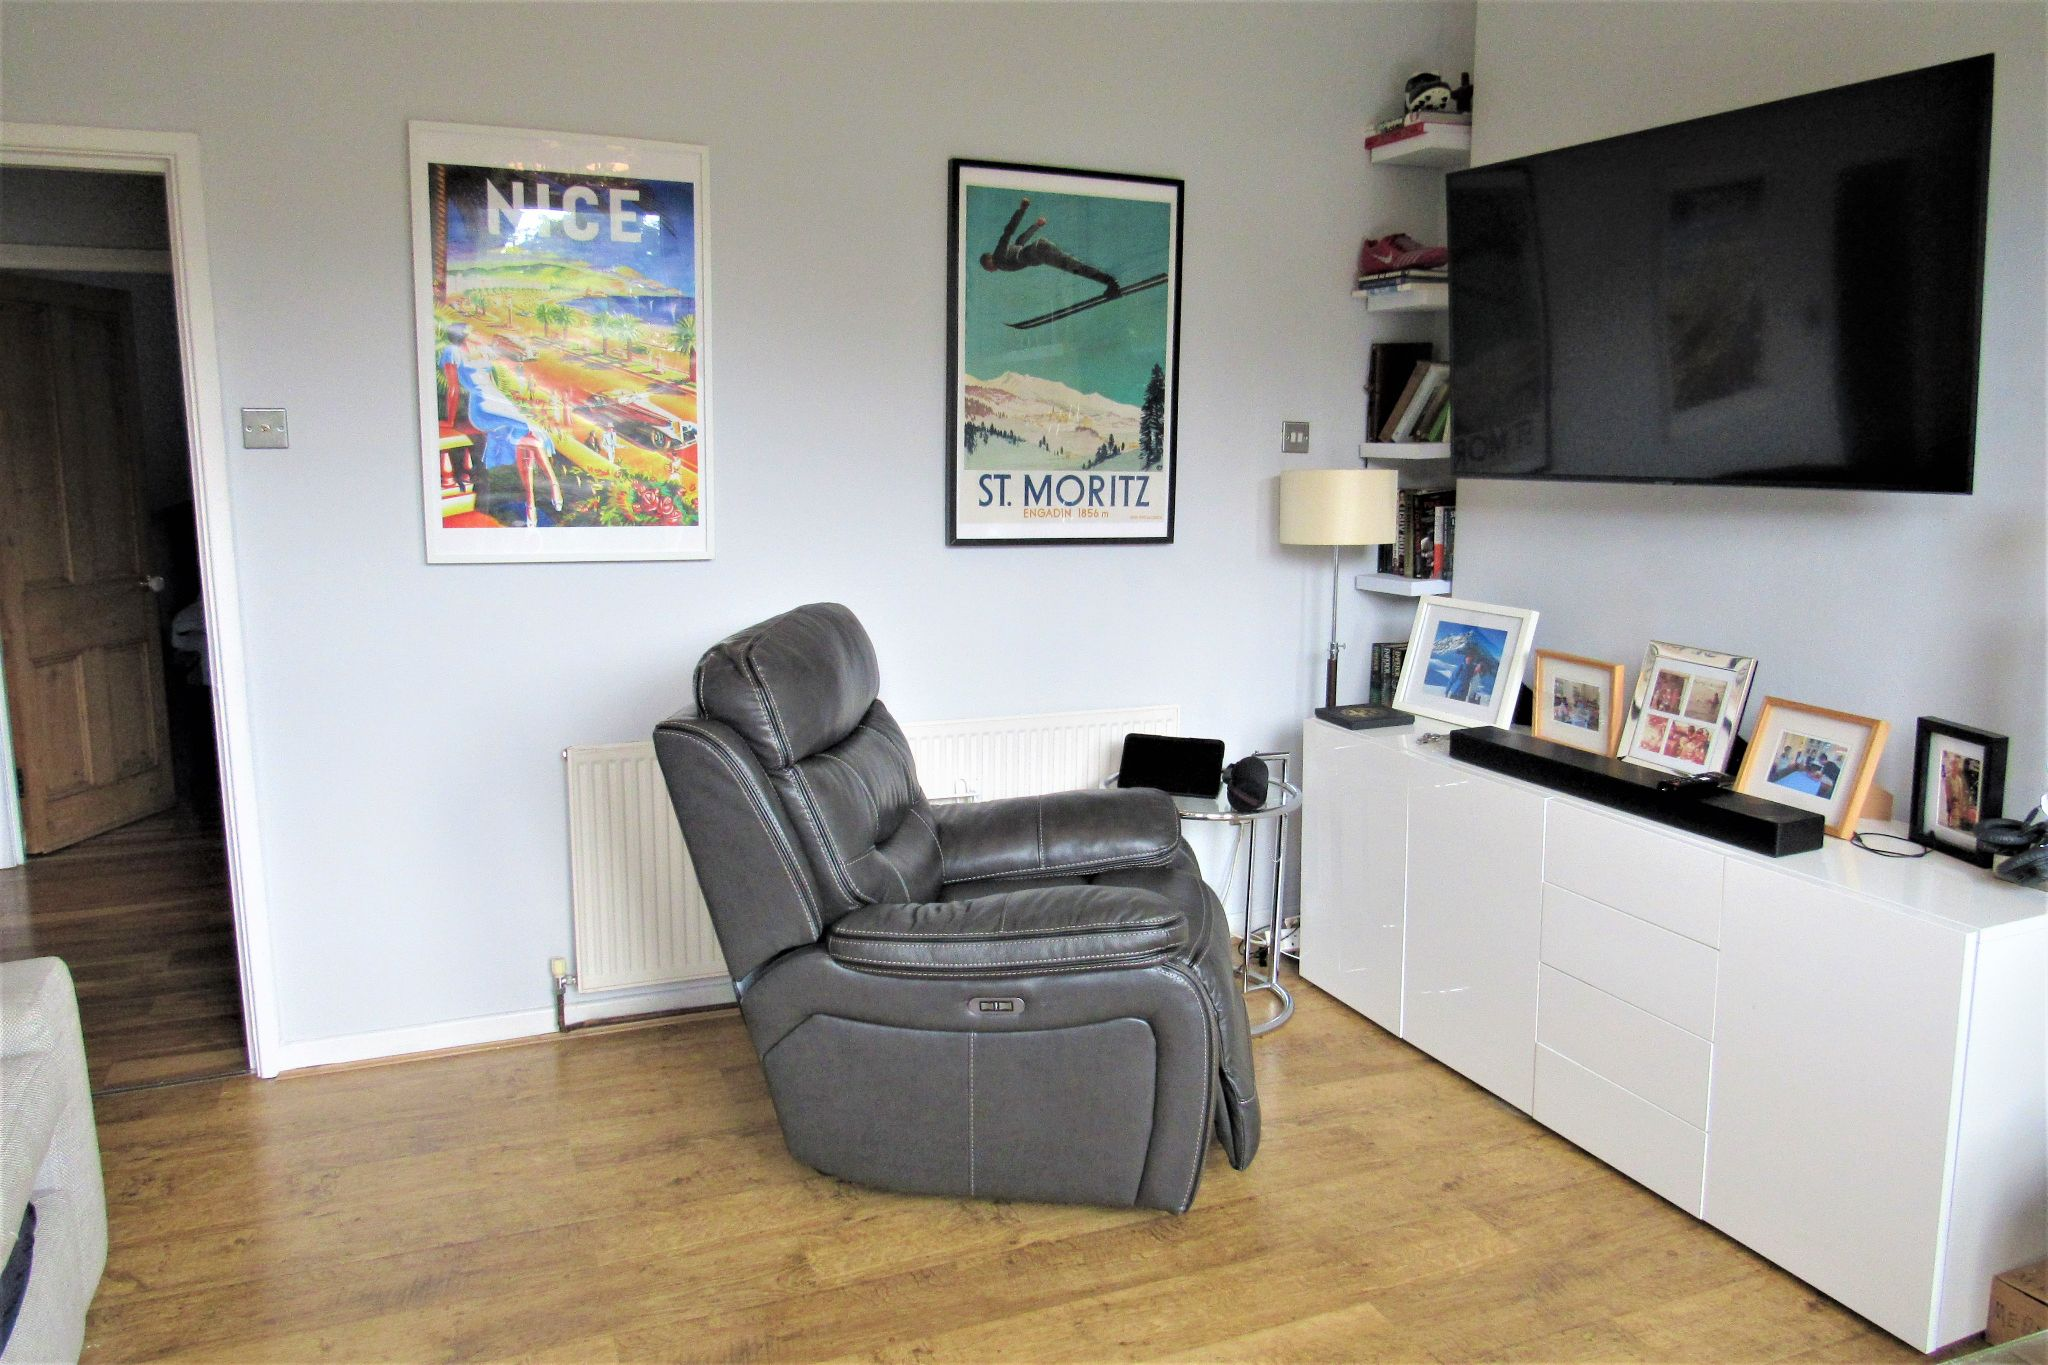 1 bedroom apartment flat/apartment For Sale in Didsbury - Photograph 3.